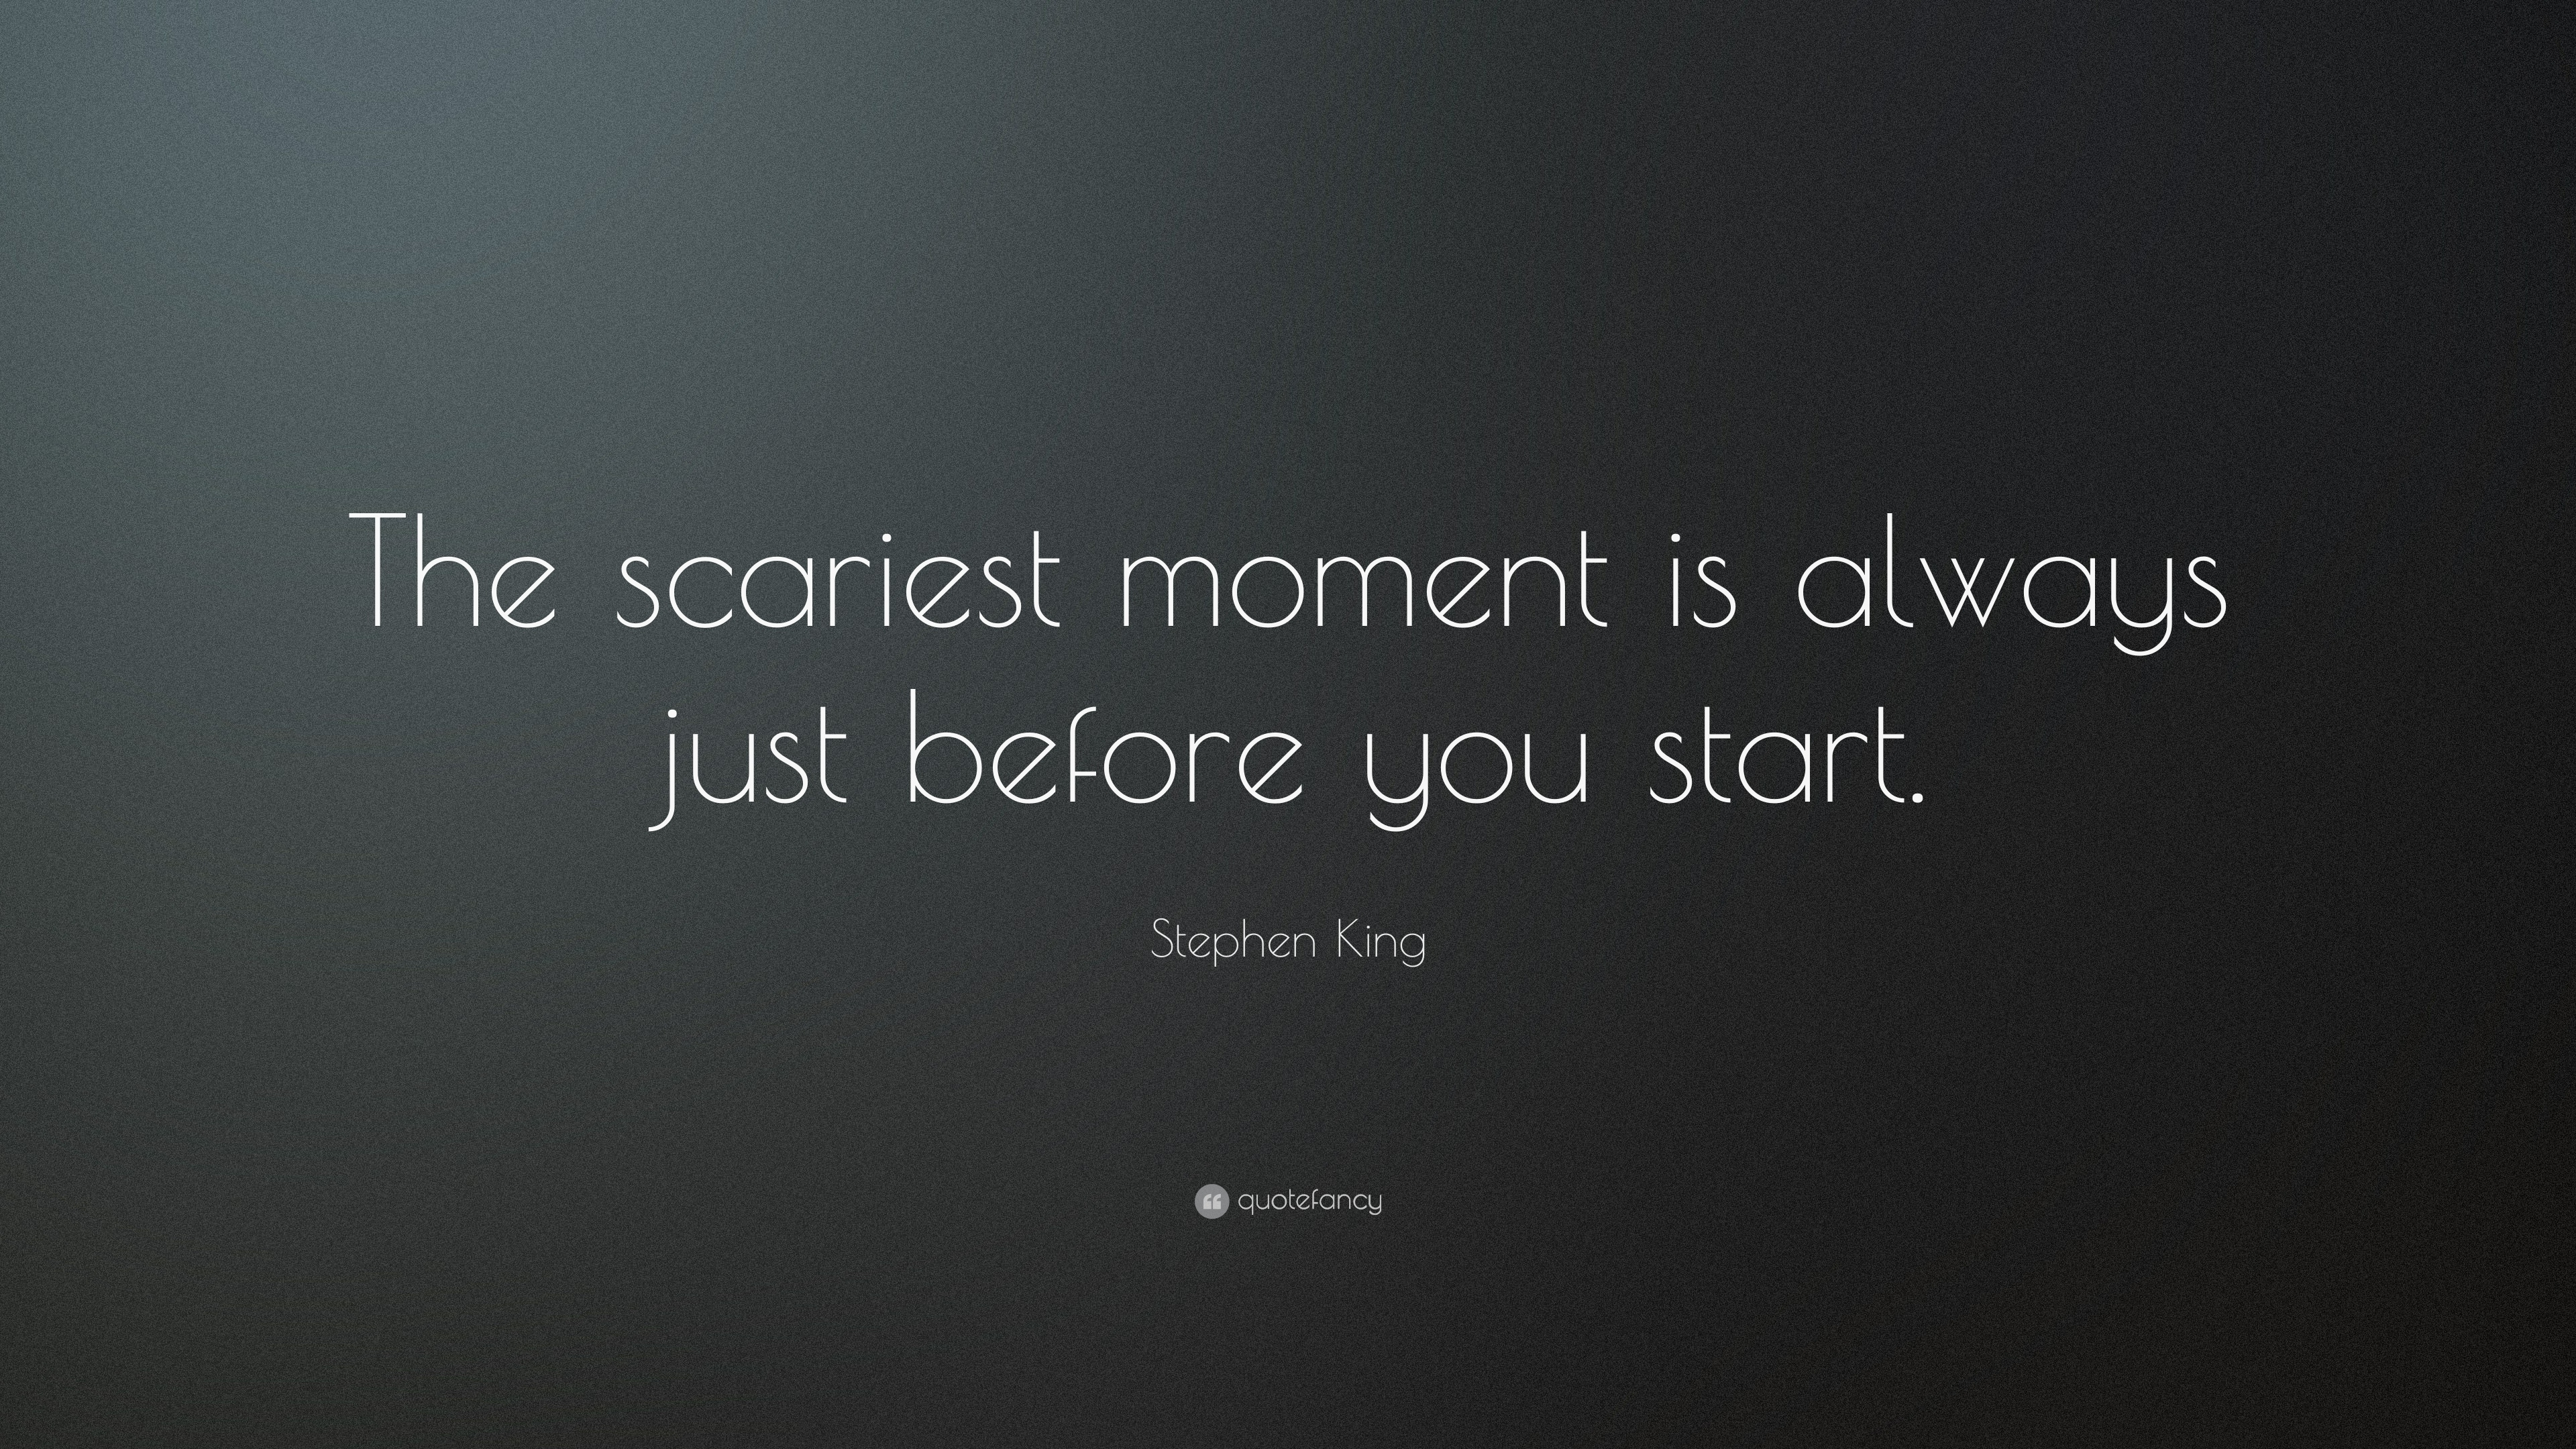 Beautiful Life Wallpapers With Quotes Stephen King Quote The Scariest Moment Is Always Just